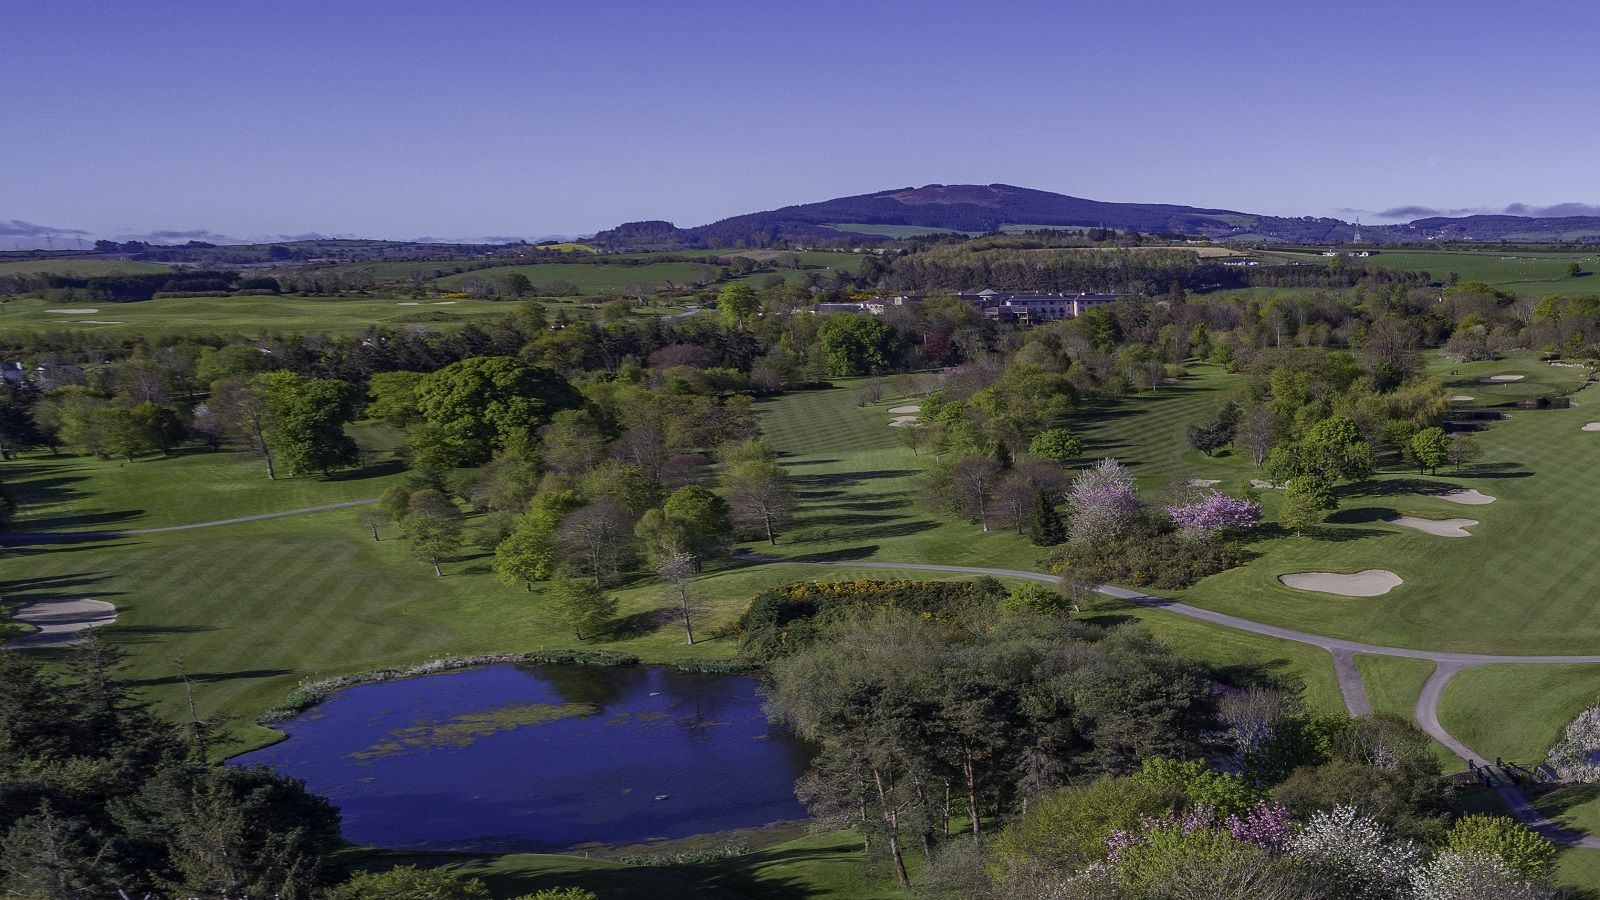 2 Druids Glen Hotel Golf Resort View 1600 x 900